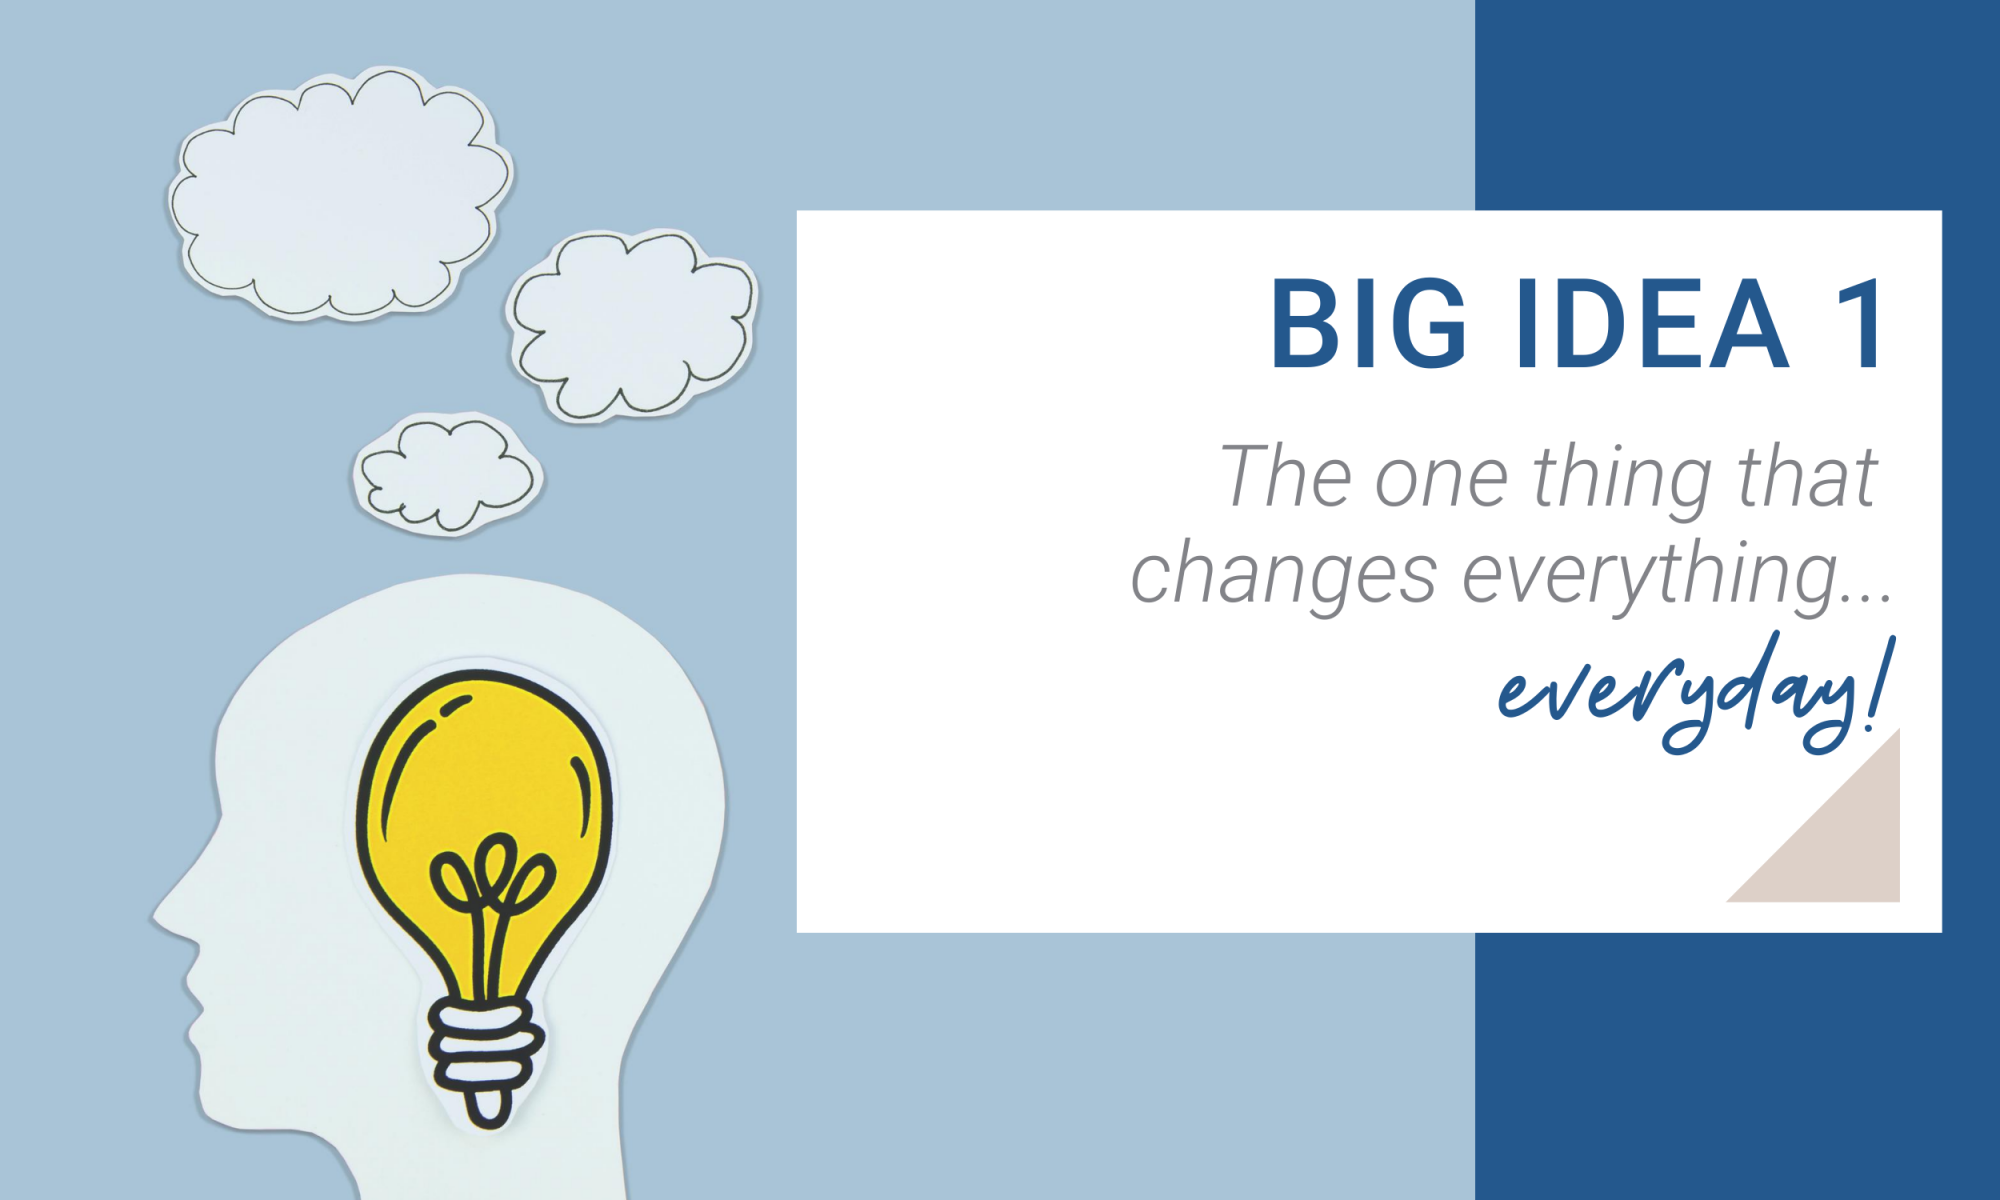 Big Idea 1. The one thing that changes everything everyday